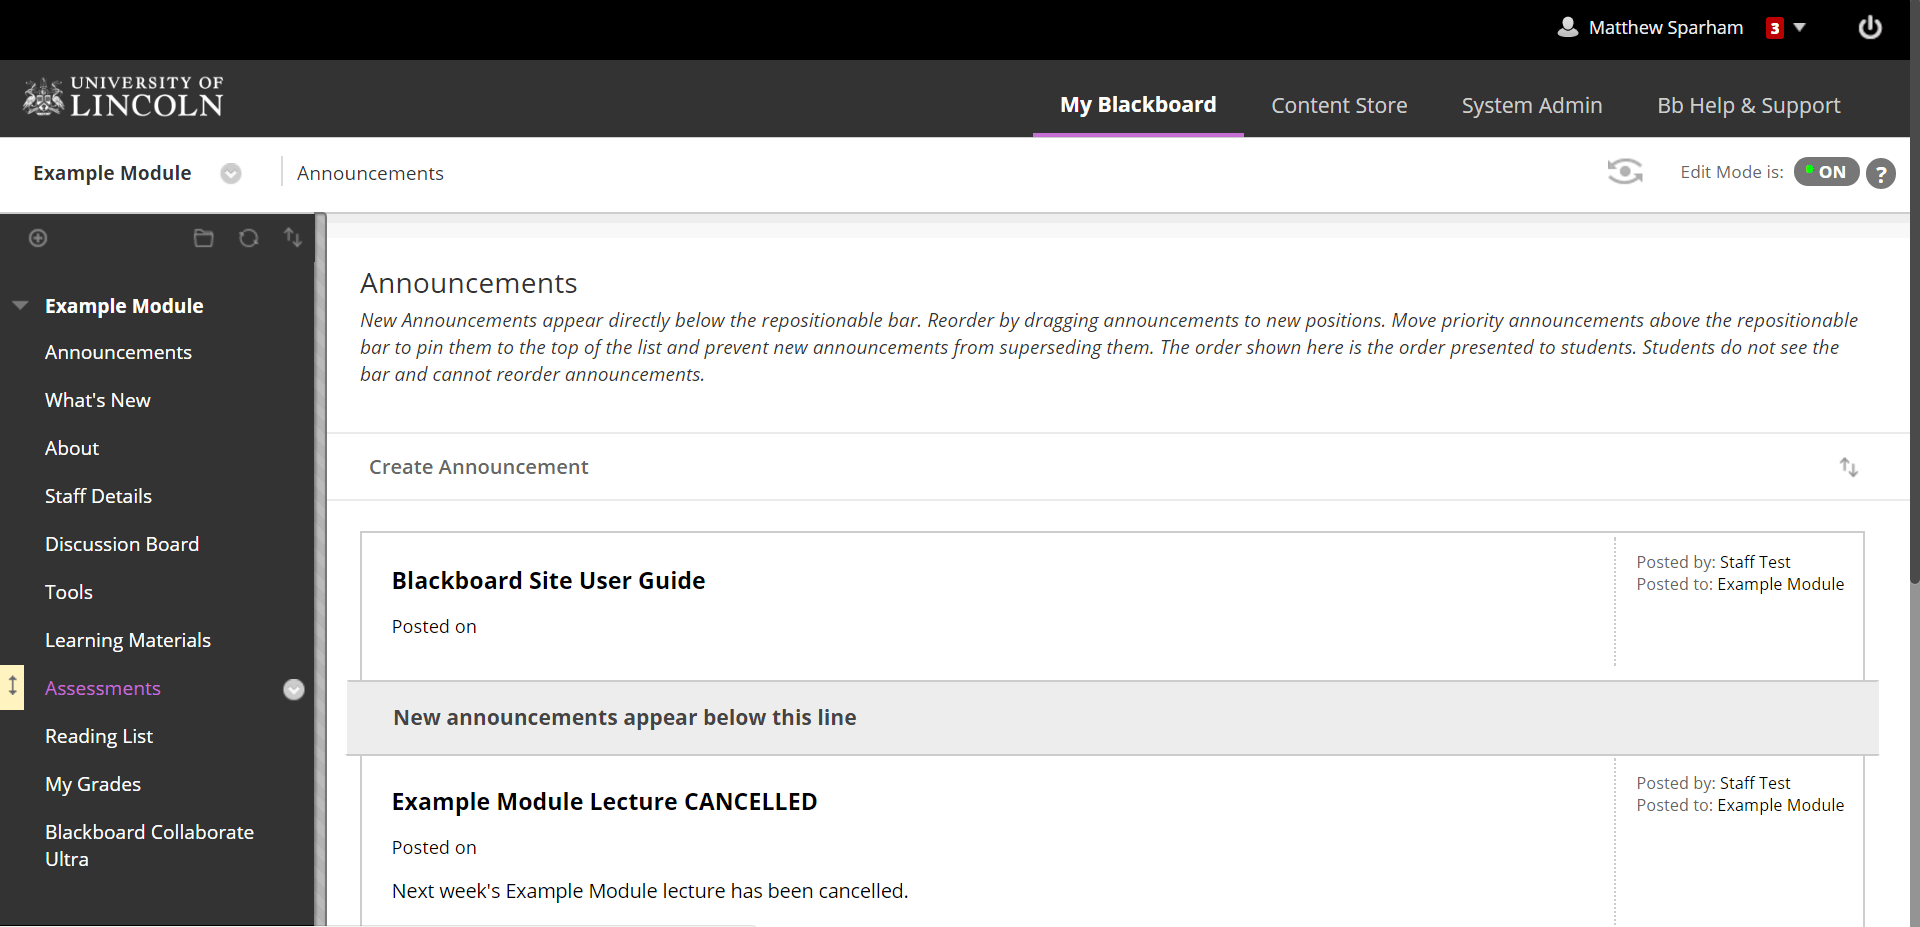 A screenshot of a Blackboard Module page. The assessments tab is highlighted in purple text on the left hand menu of the web page.